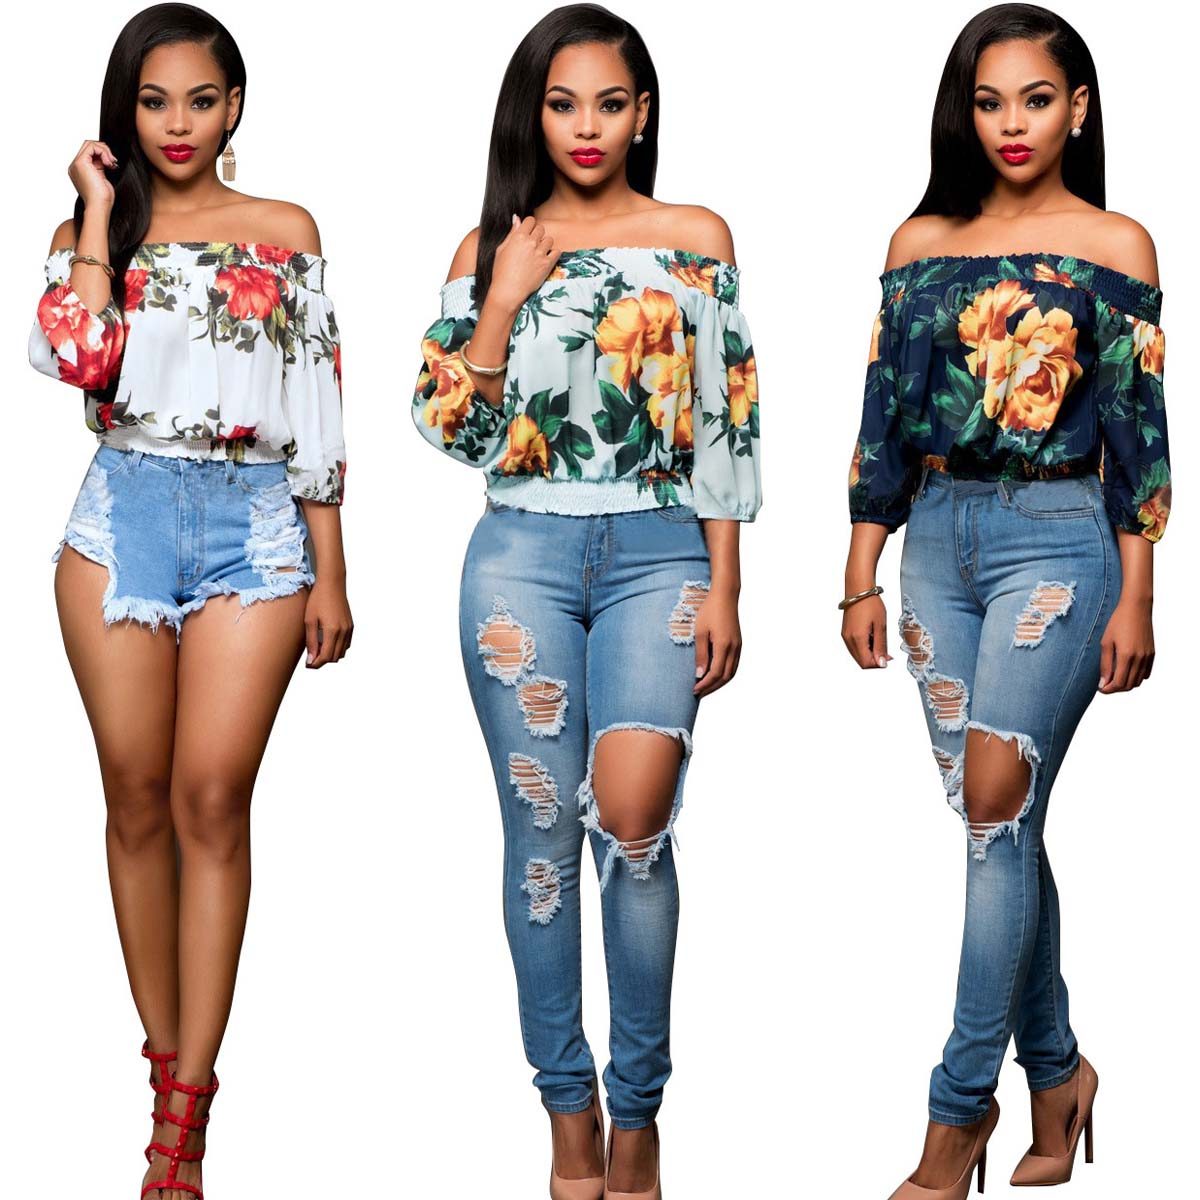 cf0751ed8283aa Details about Spring Summer 2018 Fashion Women Off-the-shoulder Loose  Floral Print Top Blouses